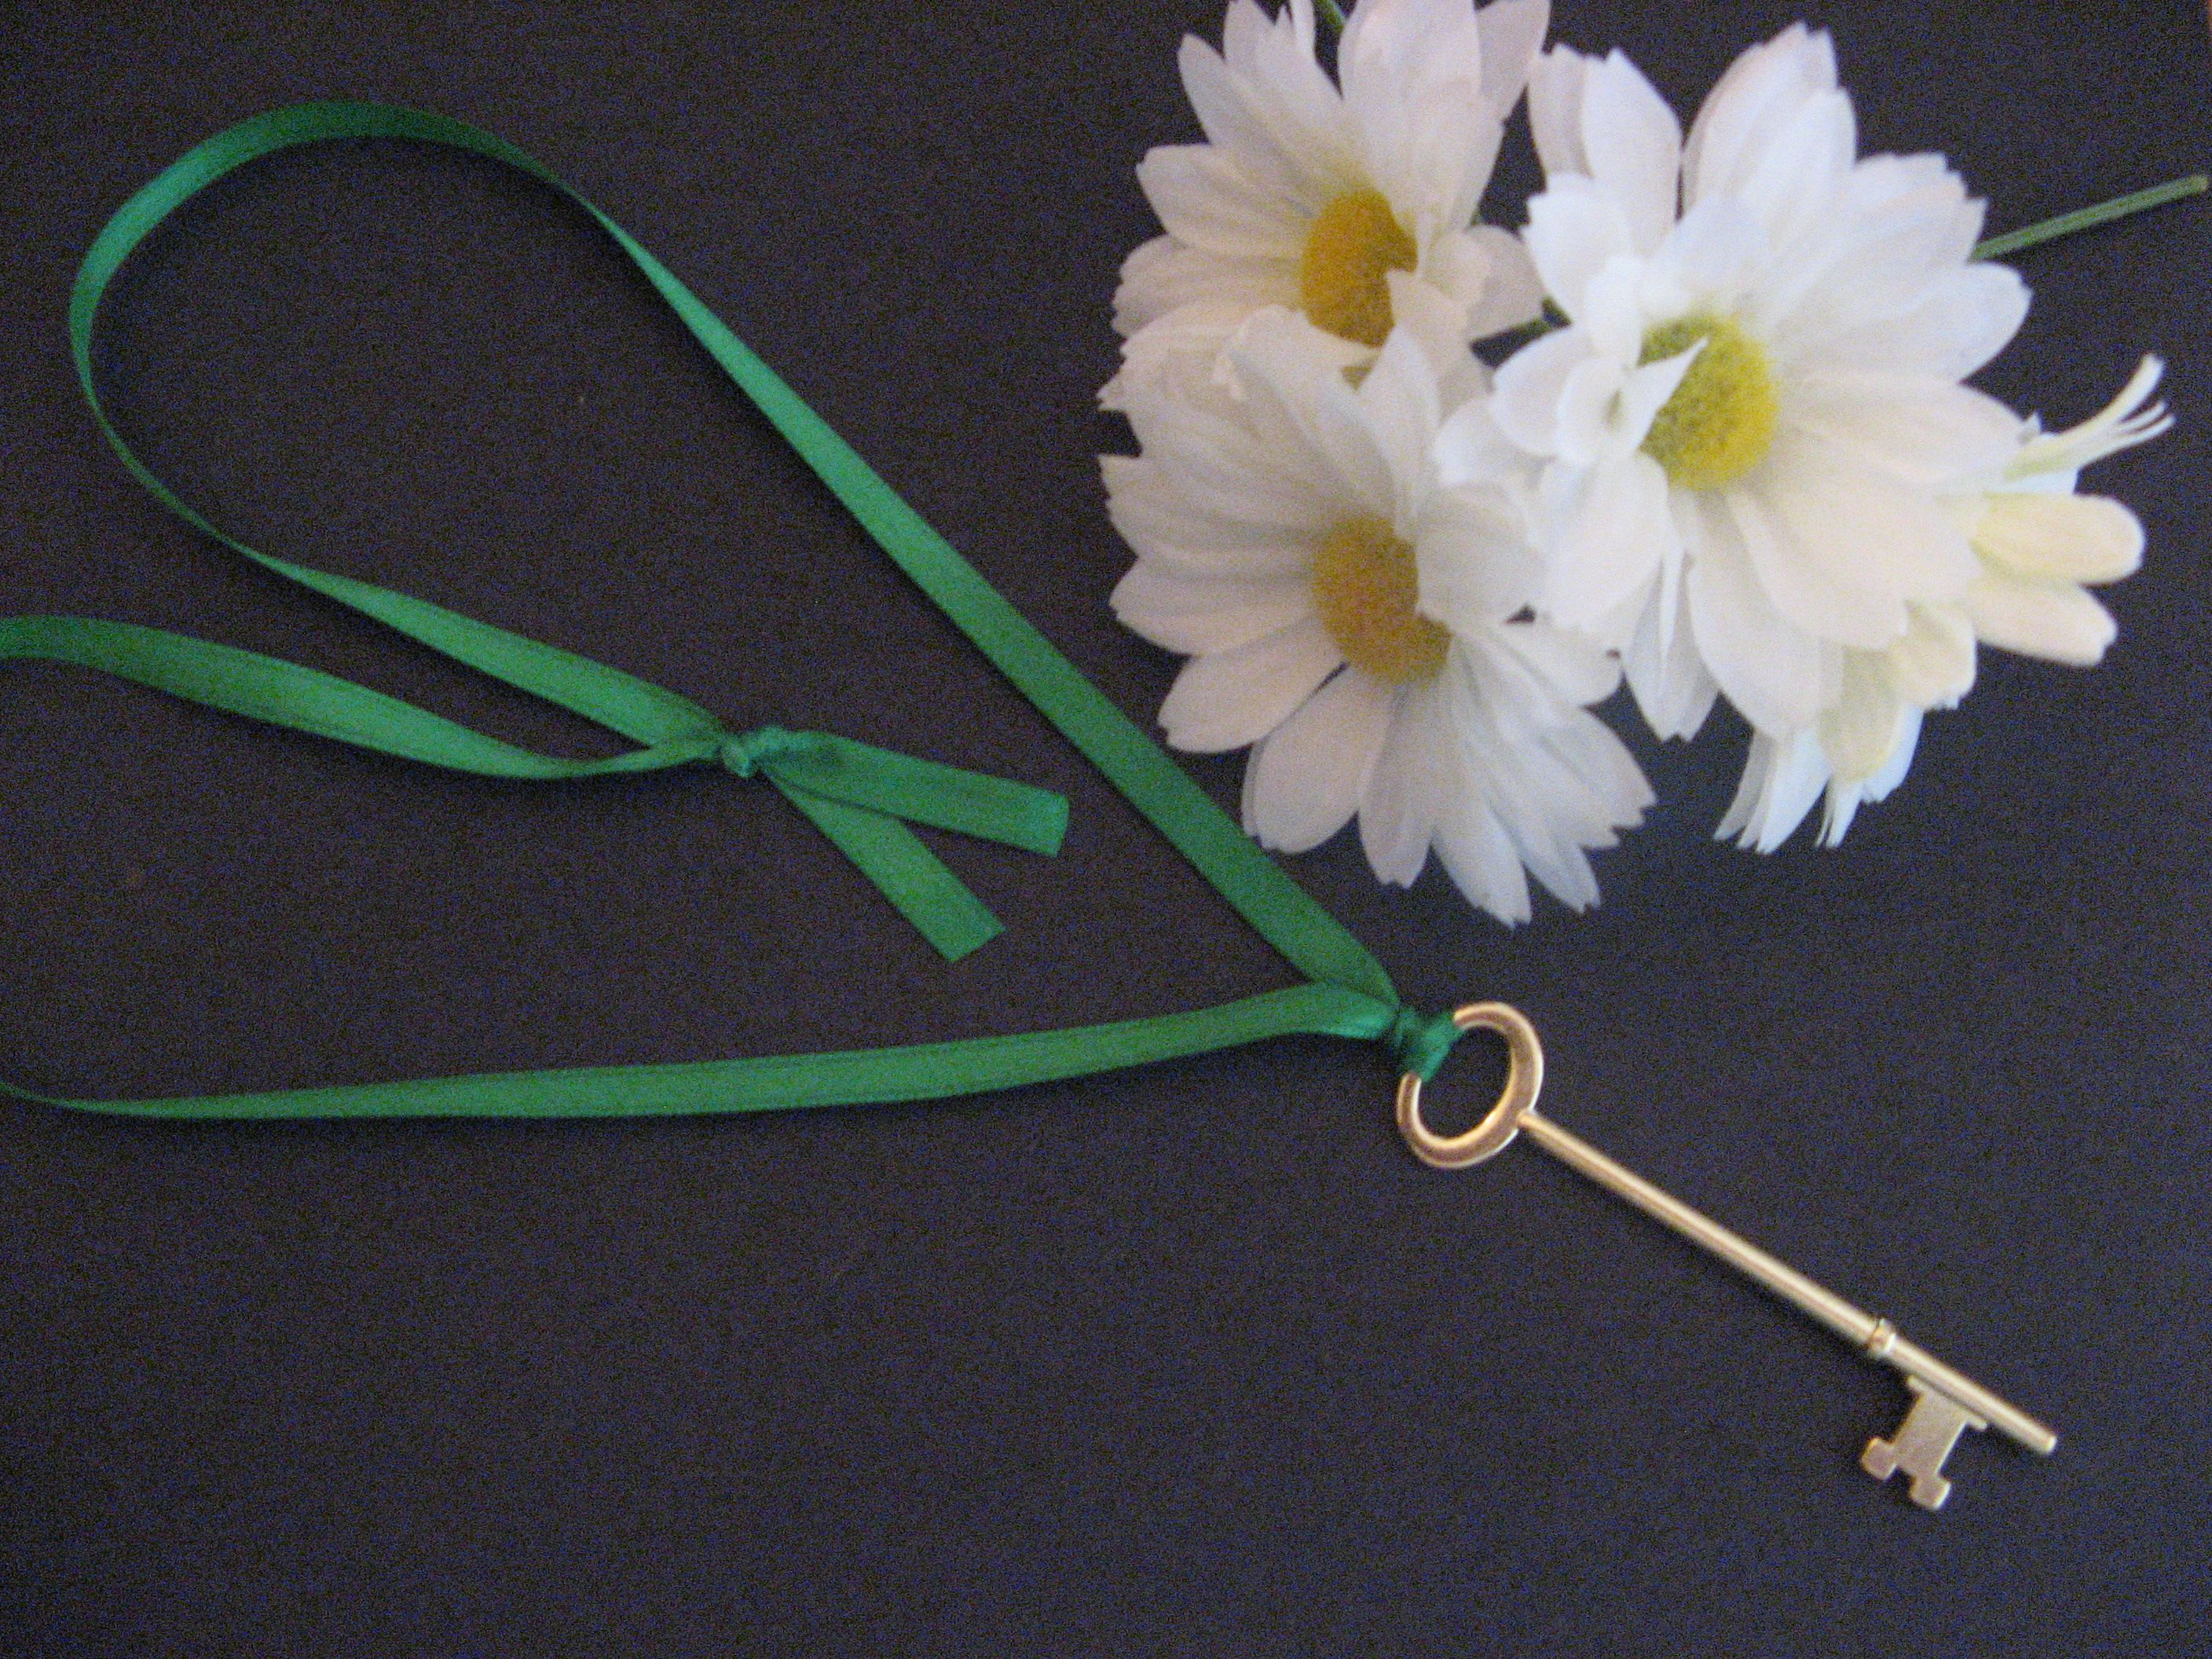 Key to the girl scout daisy flower garden keepsake or swap made key to the girl scout daisy flower garden keepsake or swap made with a izmirmasajfo